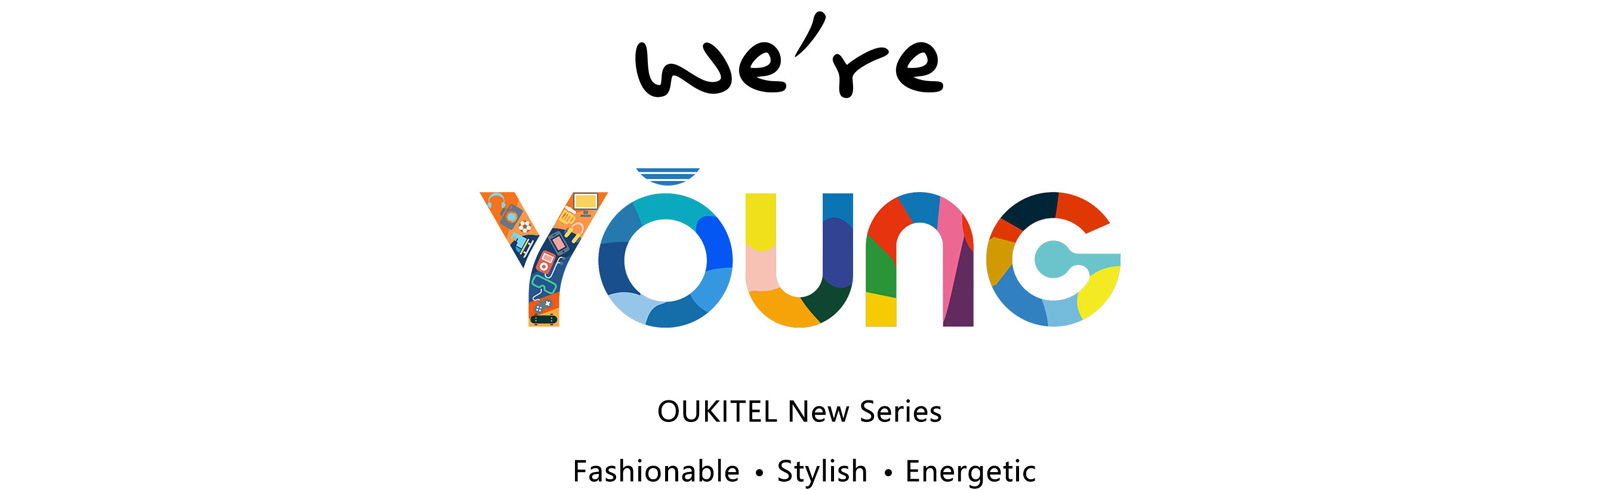 Oukitel announces a new smartphone series, the first model - Y4800 - will be launched in June